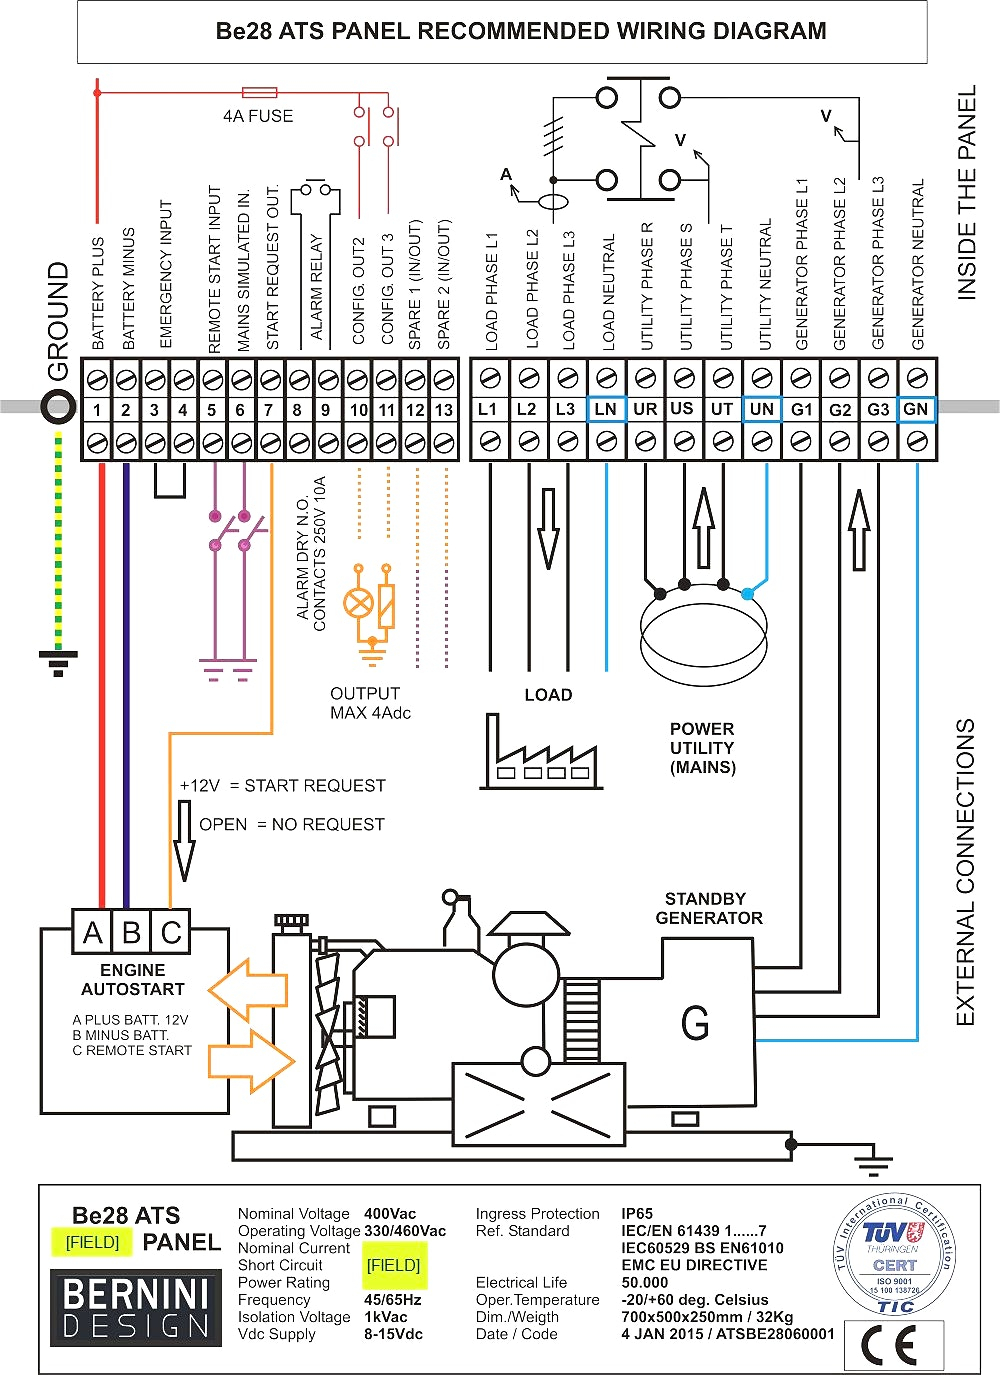 asco wiring diagrams simple wiring diagram rh david huggett co uk asco 7000  series ats wiring